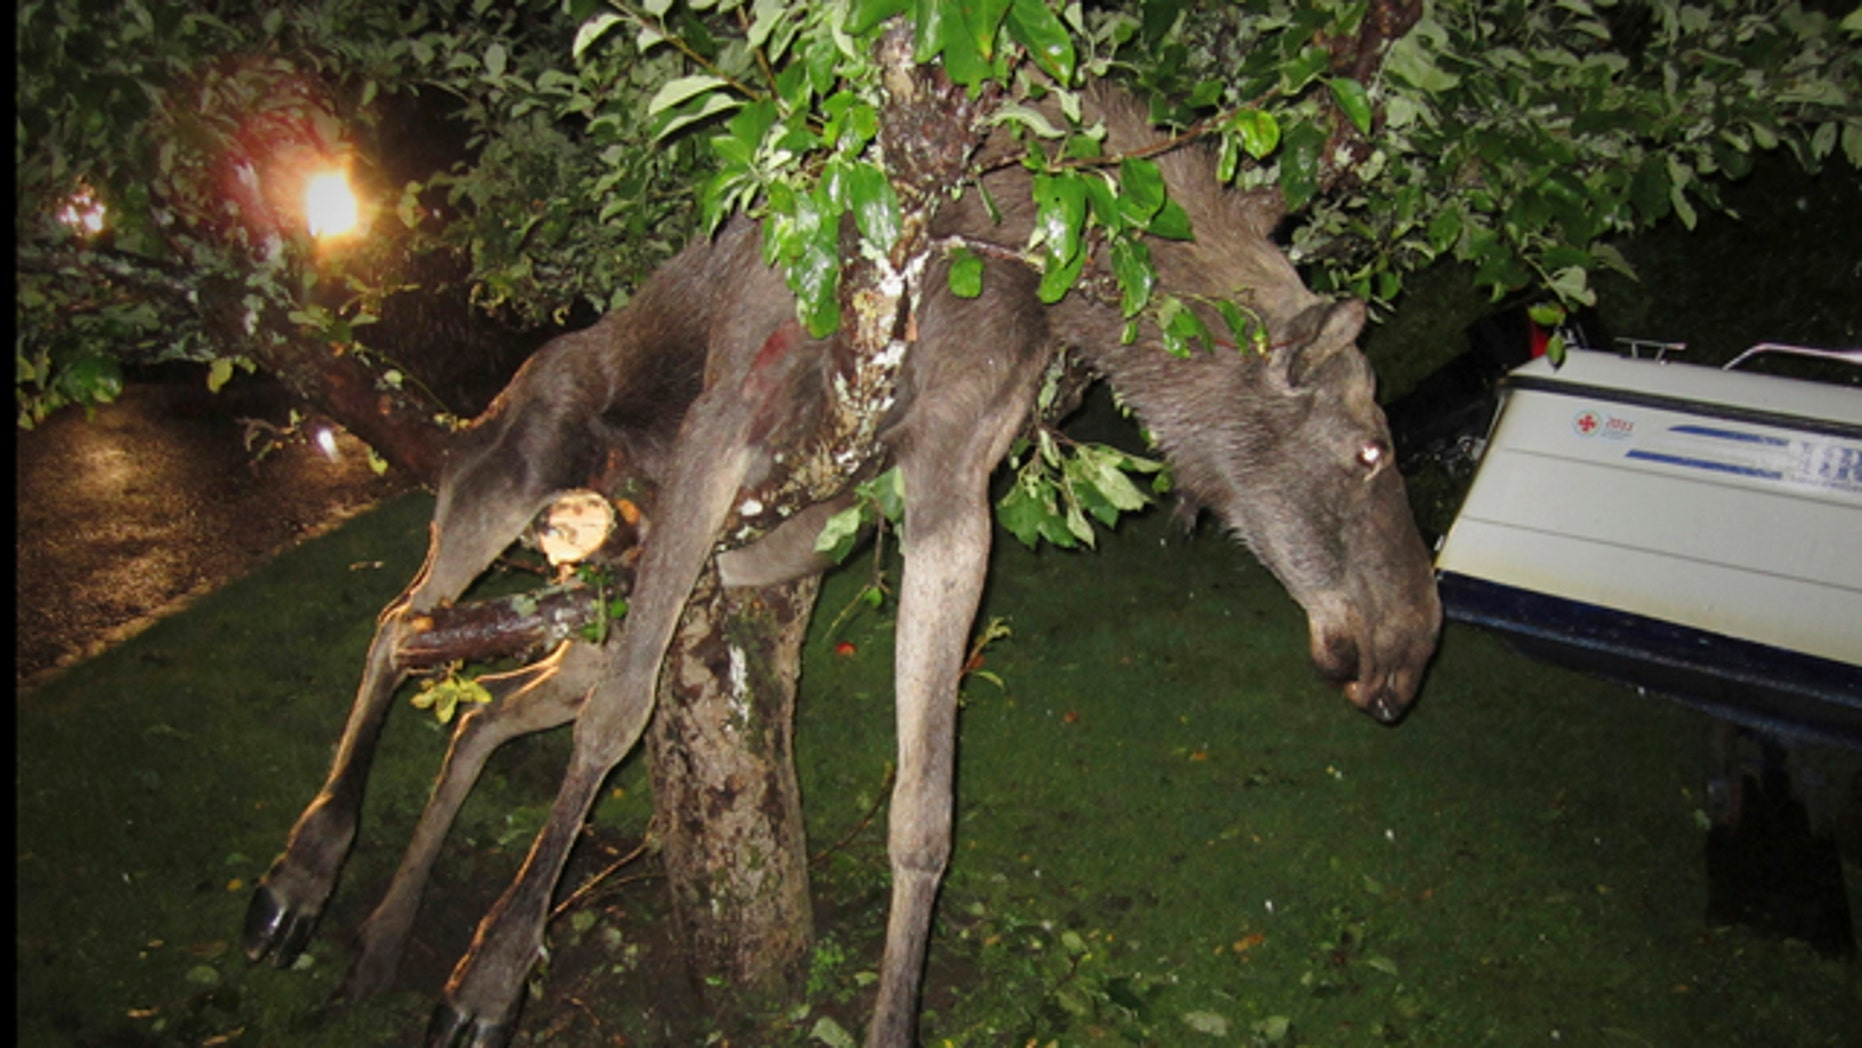 Sept. 6 2011: A seemingly intoxicated moose is discovered entangled in an apple tree by a stunned Swede in Goteborg, Sweden late Tuesday.